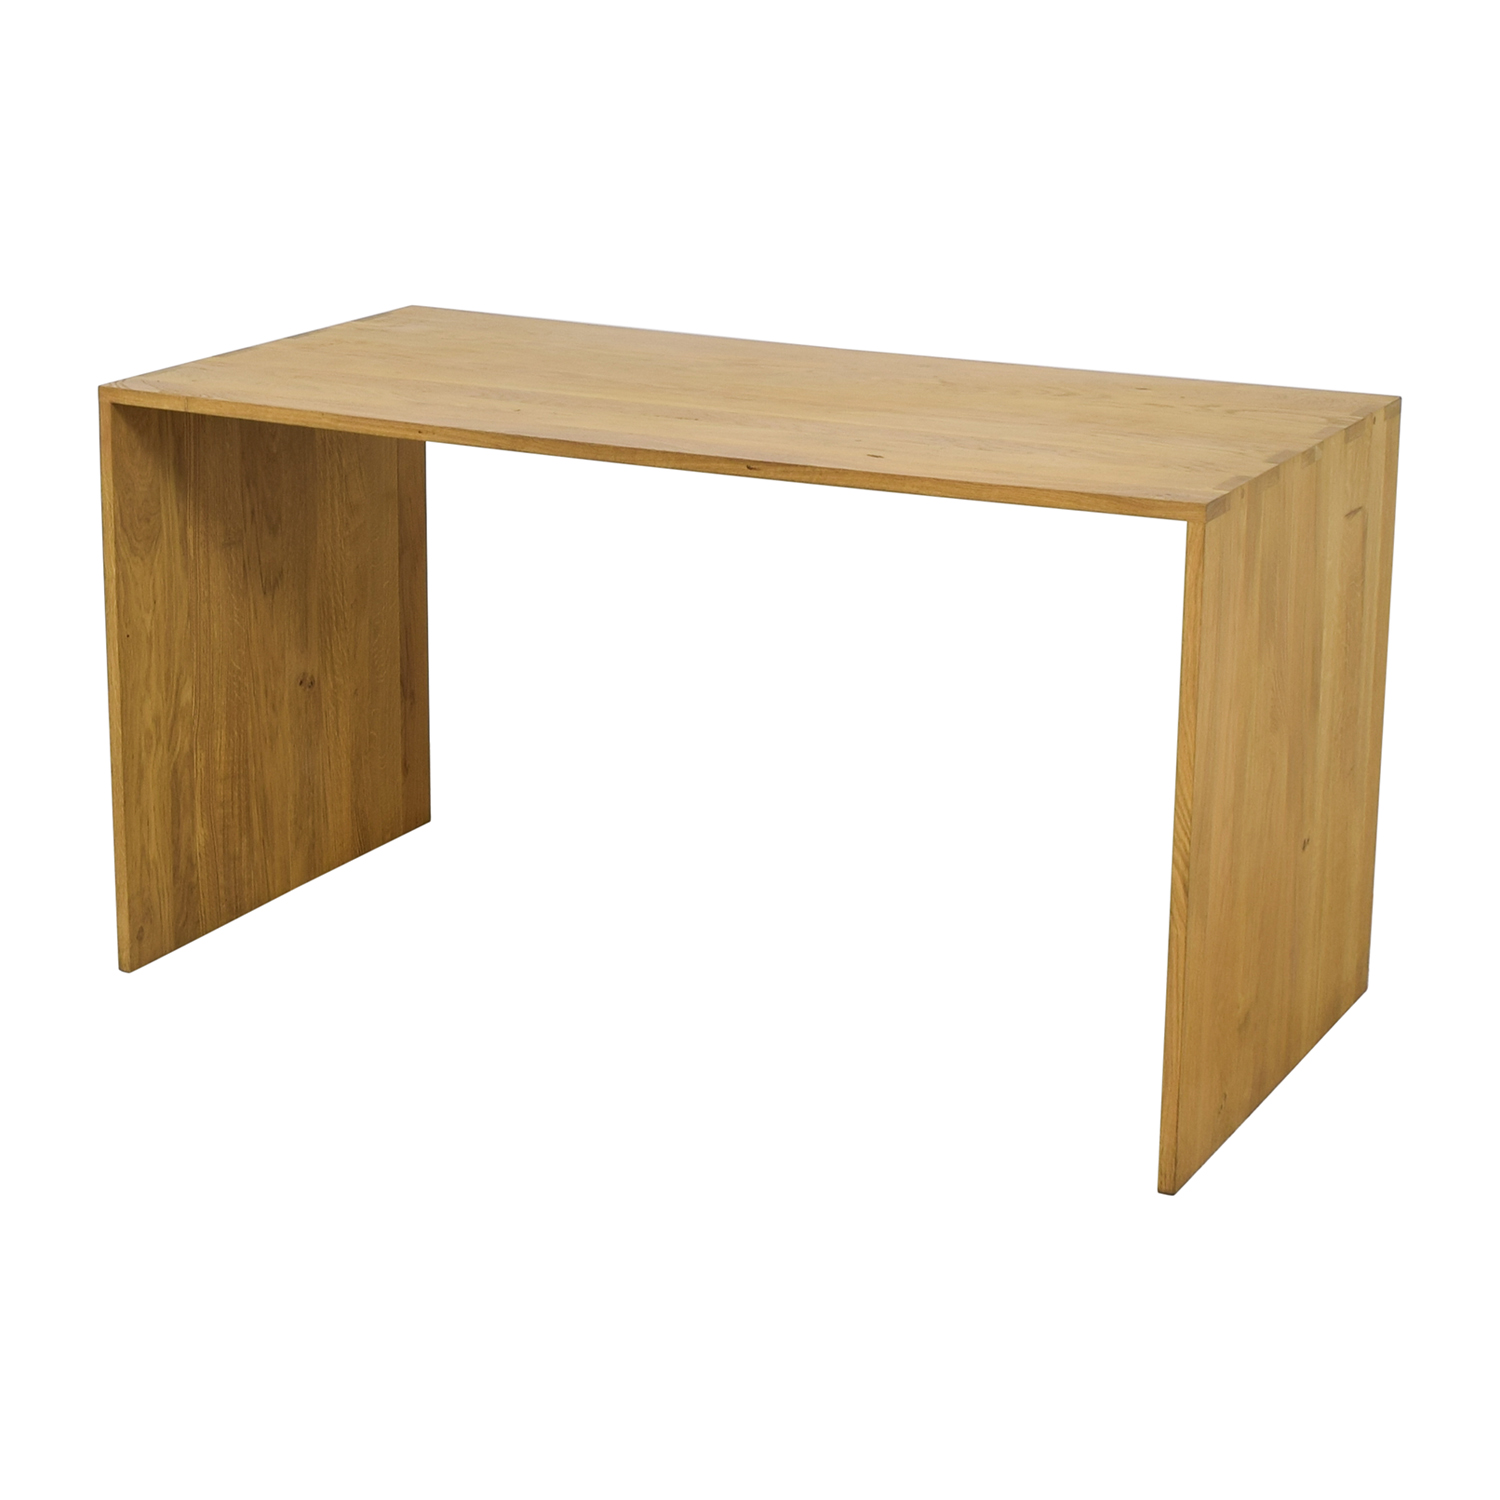 81 off crate barrel crate barrel raw oak wood desk tables